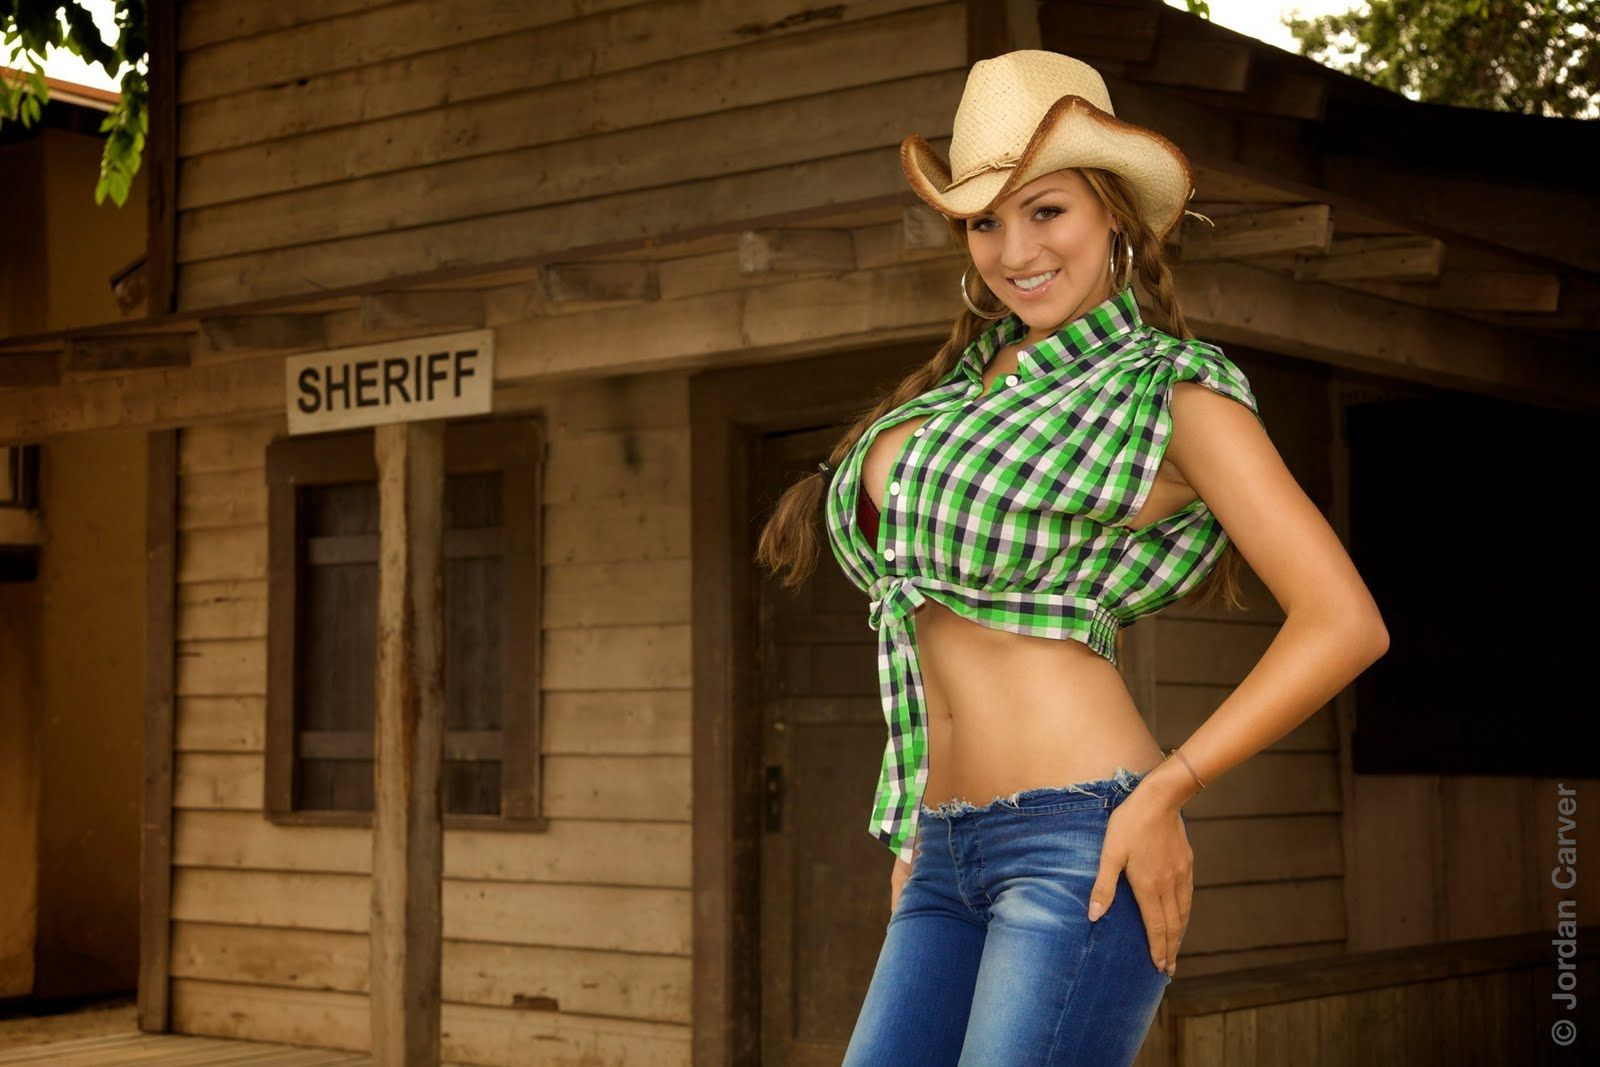 Hot Cowgirl Models Female People Background Wallpapers on ...